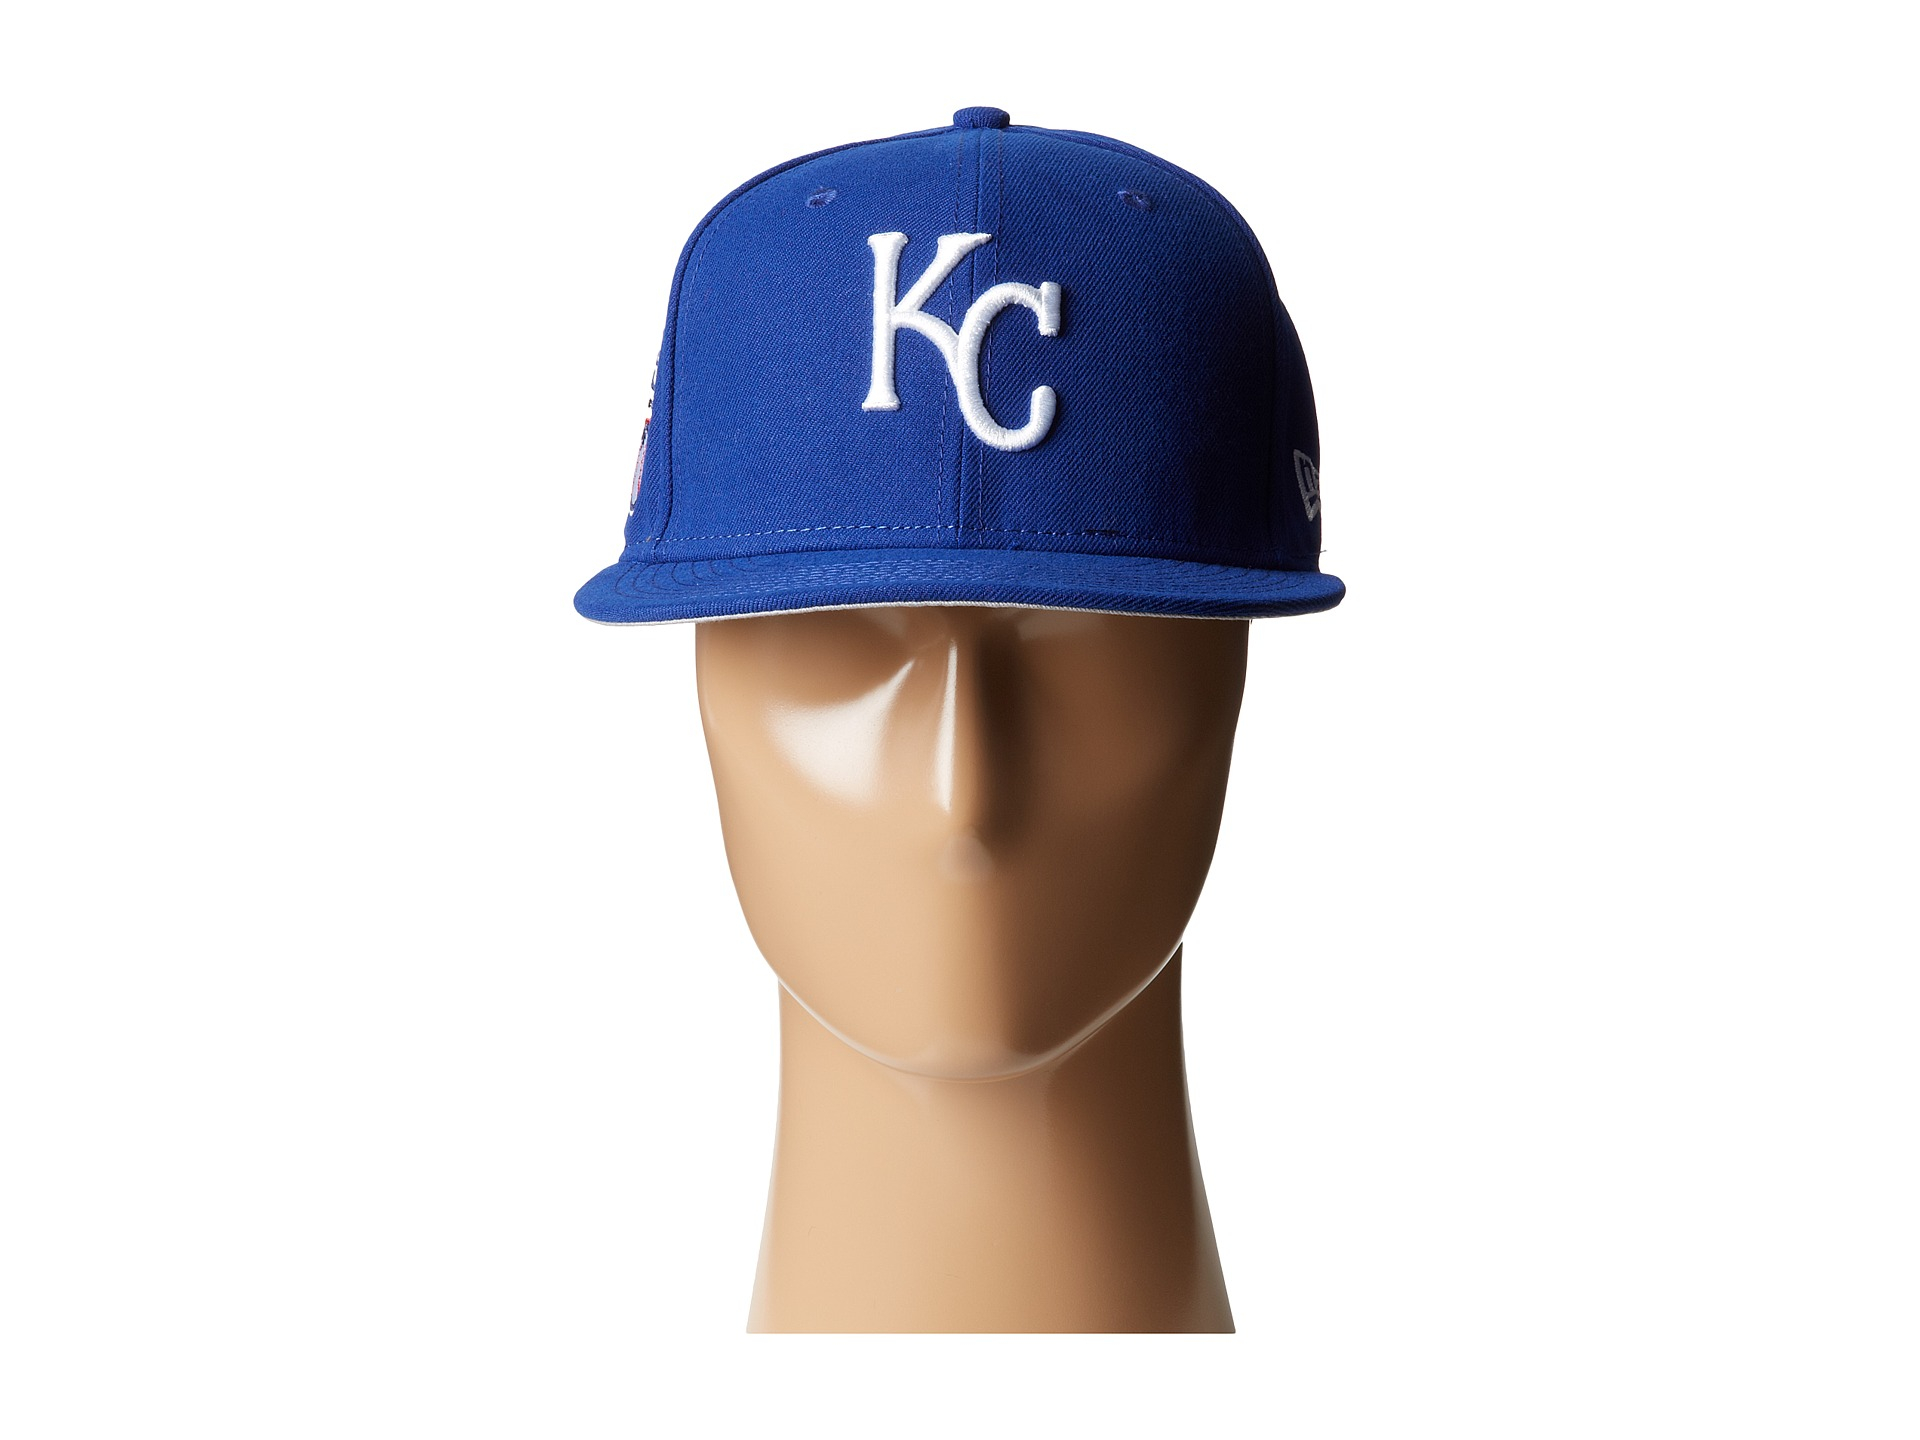 Lyst - Ktz Mlb Baycik Snap 59fifty - Kansas City Royals in Blue for Men 085d9a376080